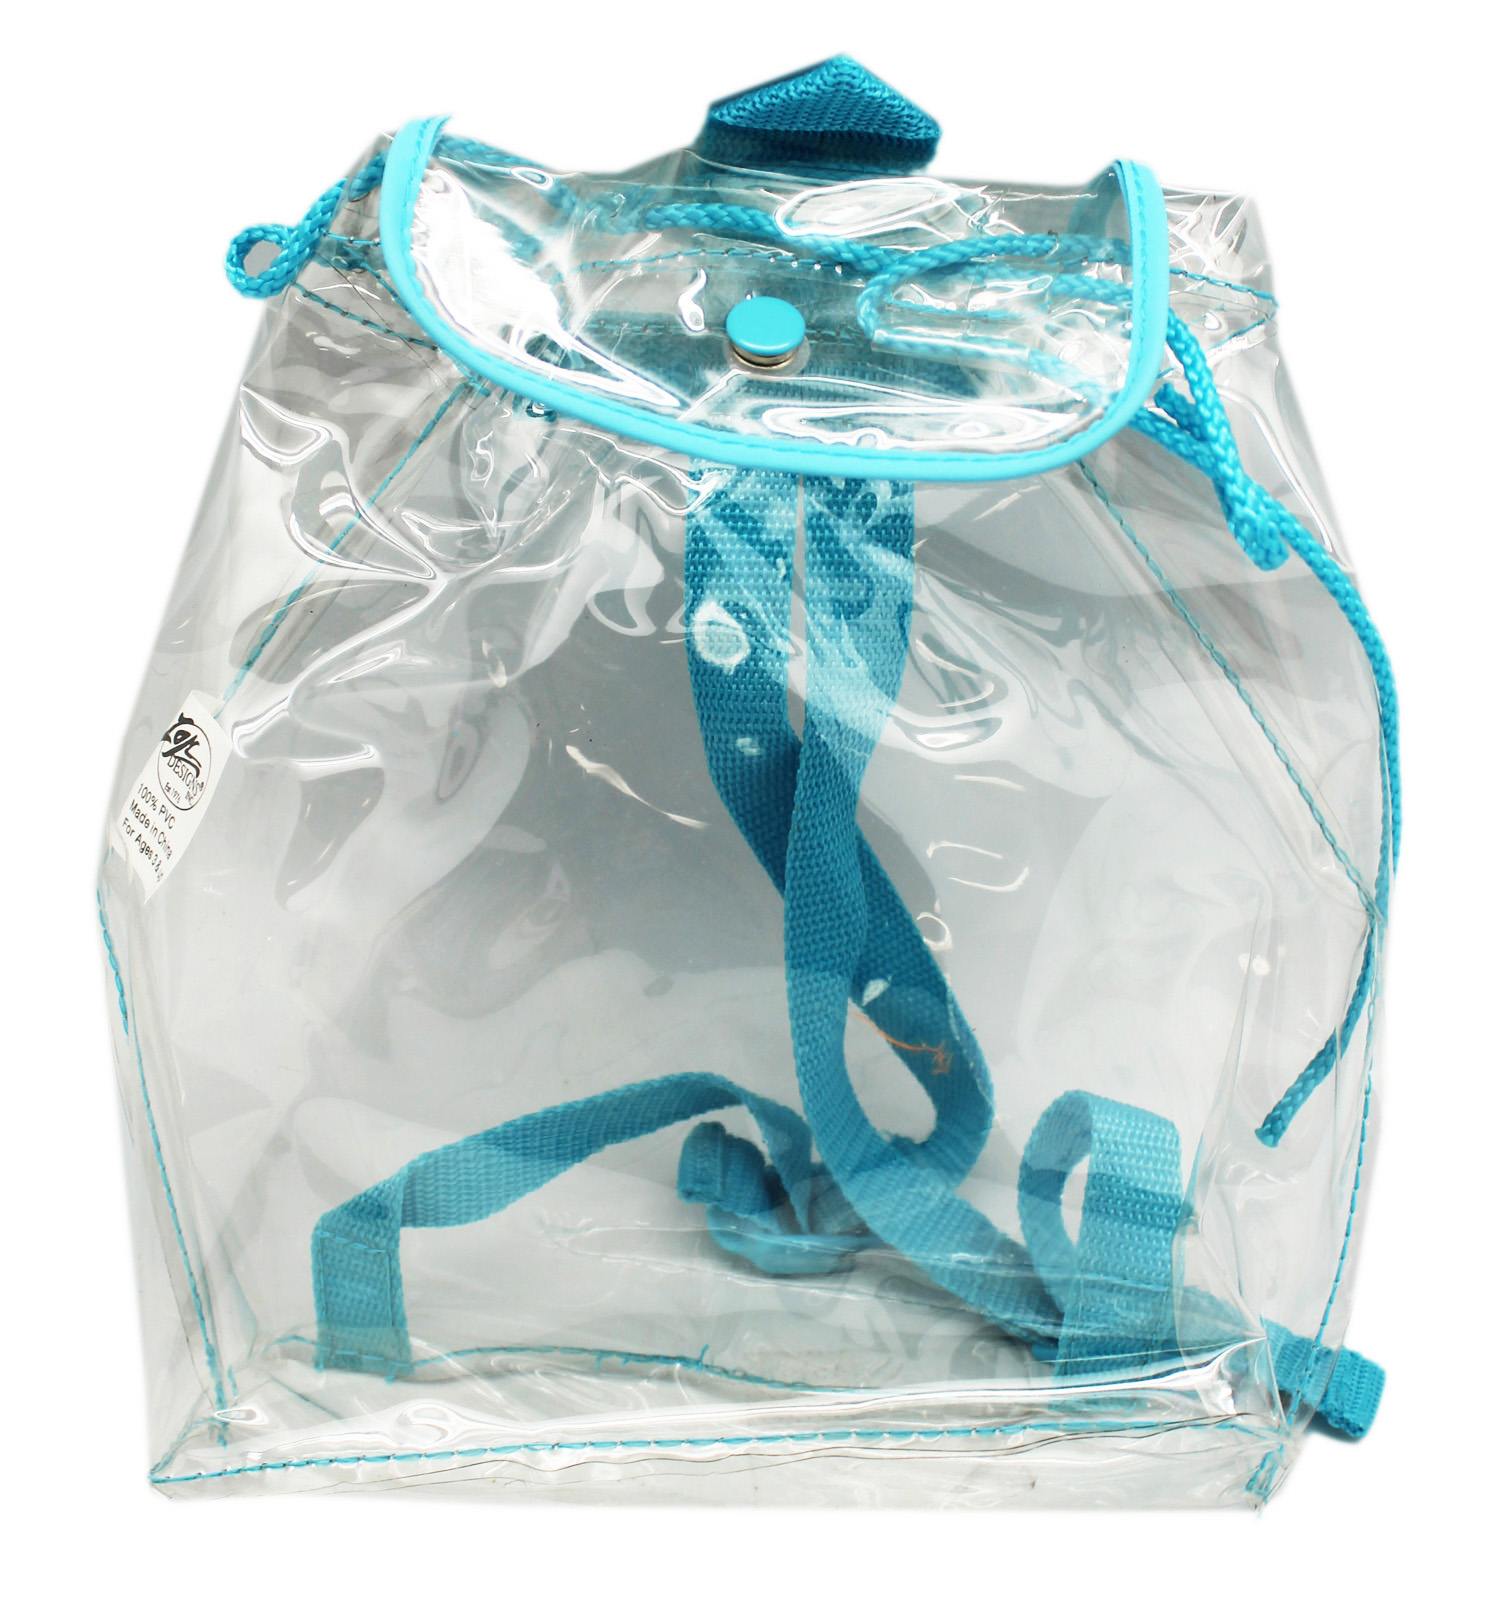 Clear Plastic Mini Backpack Knapsack With Teal Back Straps by